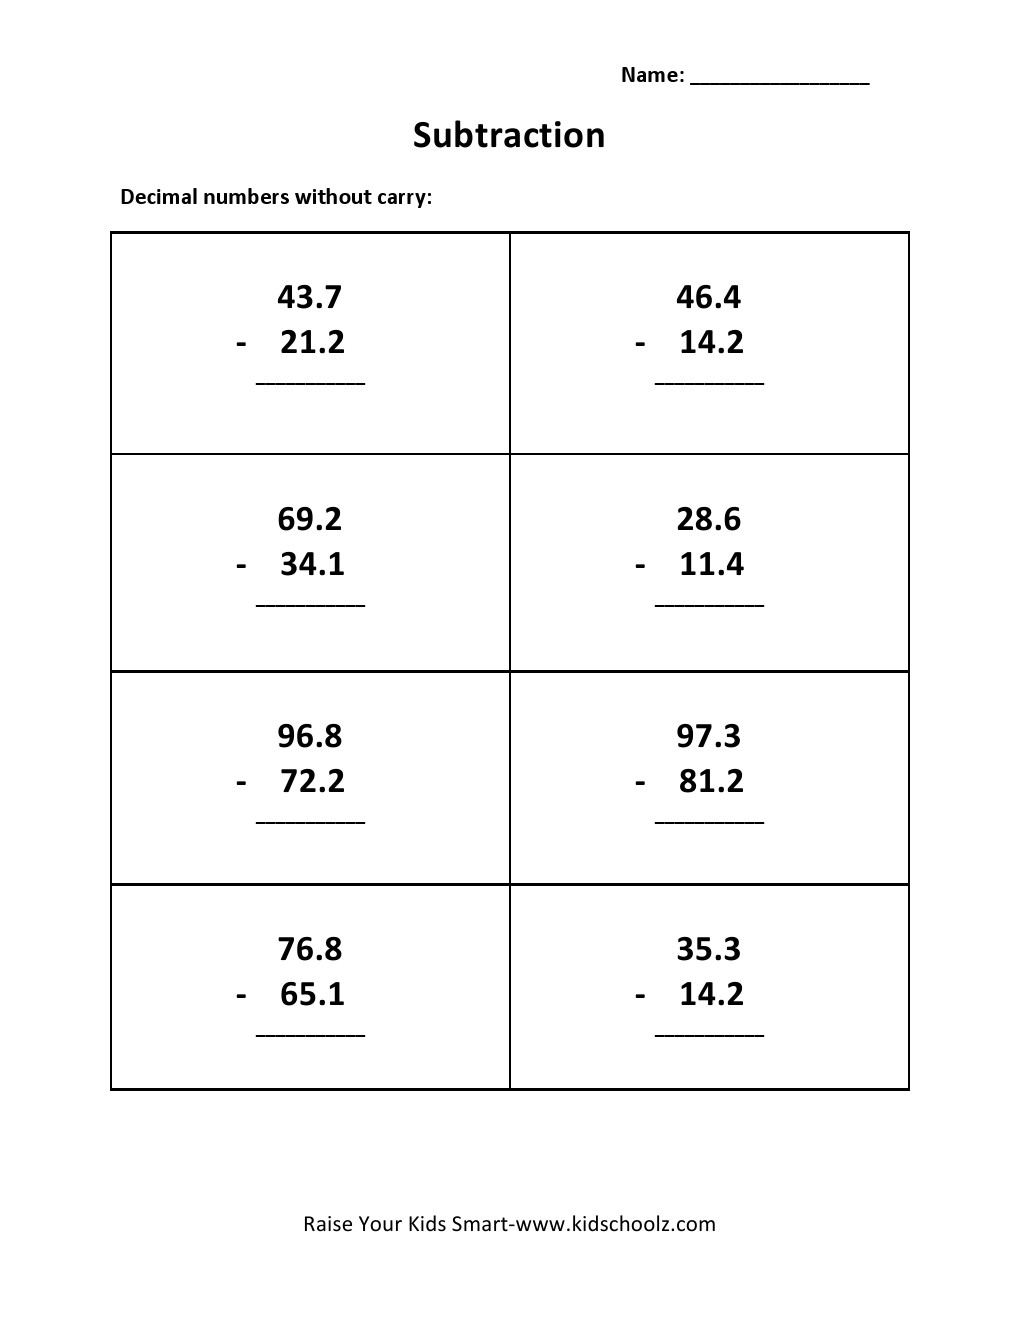 Grade 3 Decimal Subtraction Worksheet 2 KidschoolzKidschoolz – Decimal Subtraction Worksheets